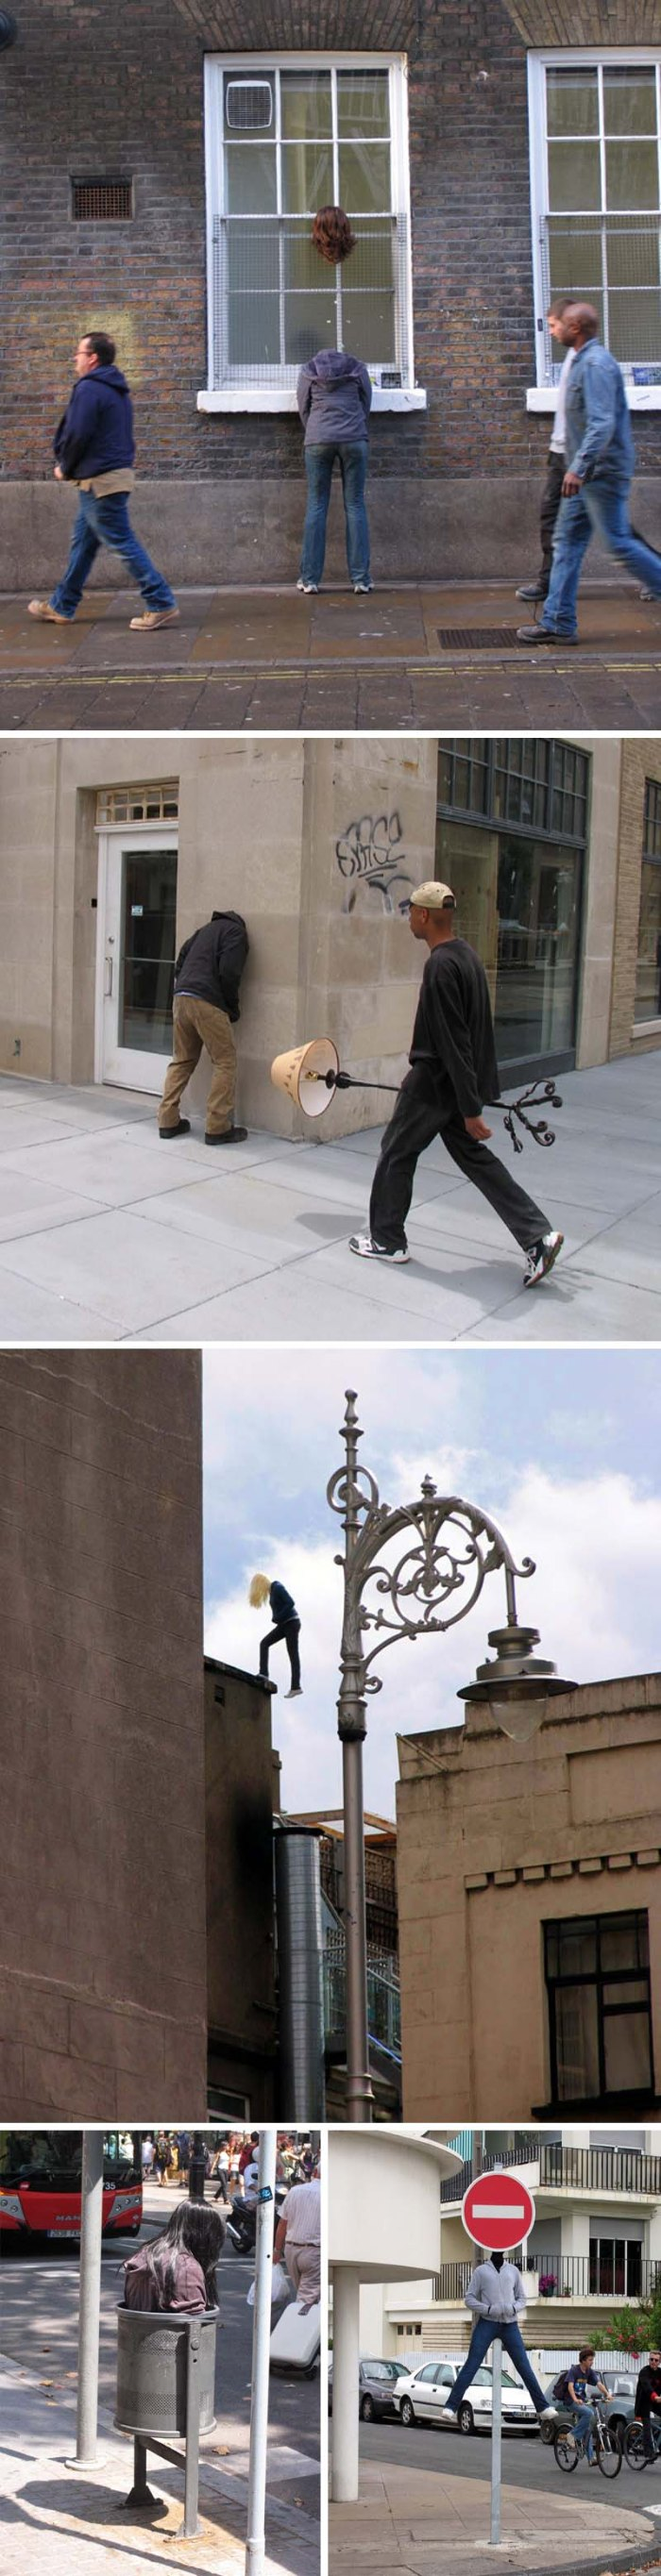 Mark Jenkins, street art, stuffed people,